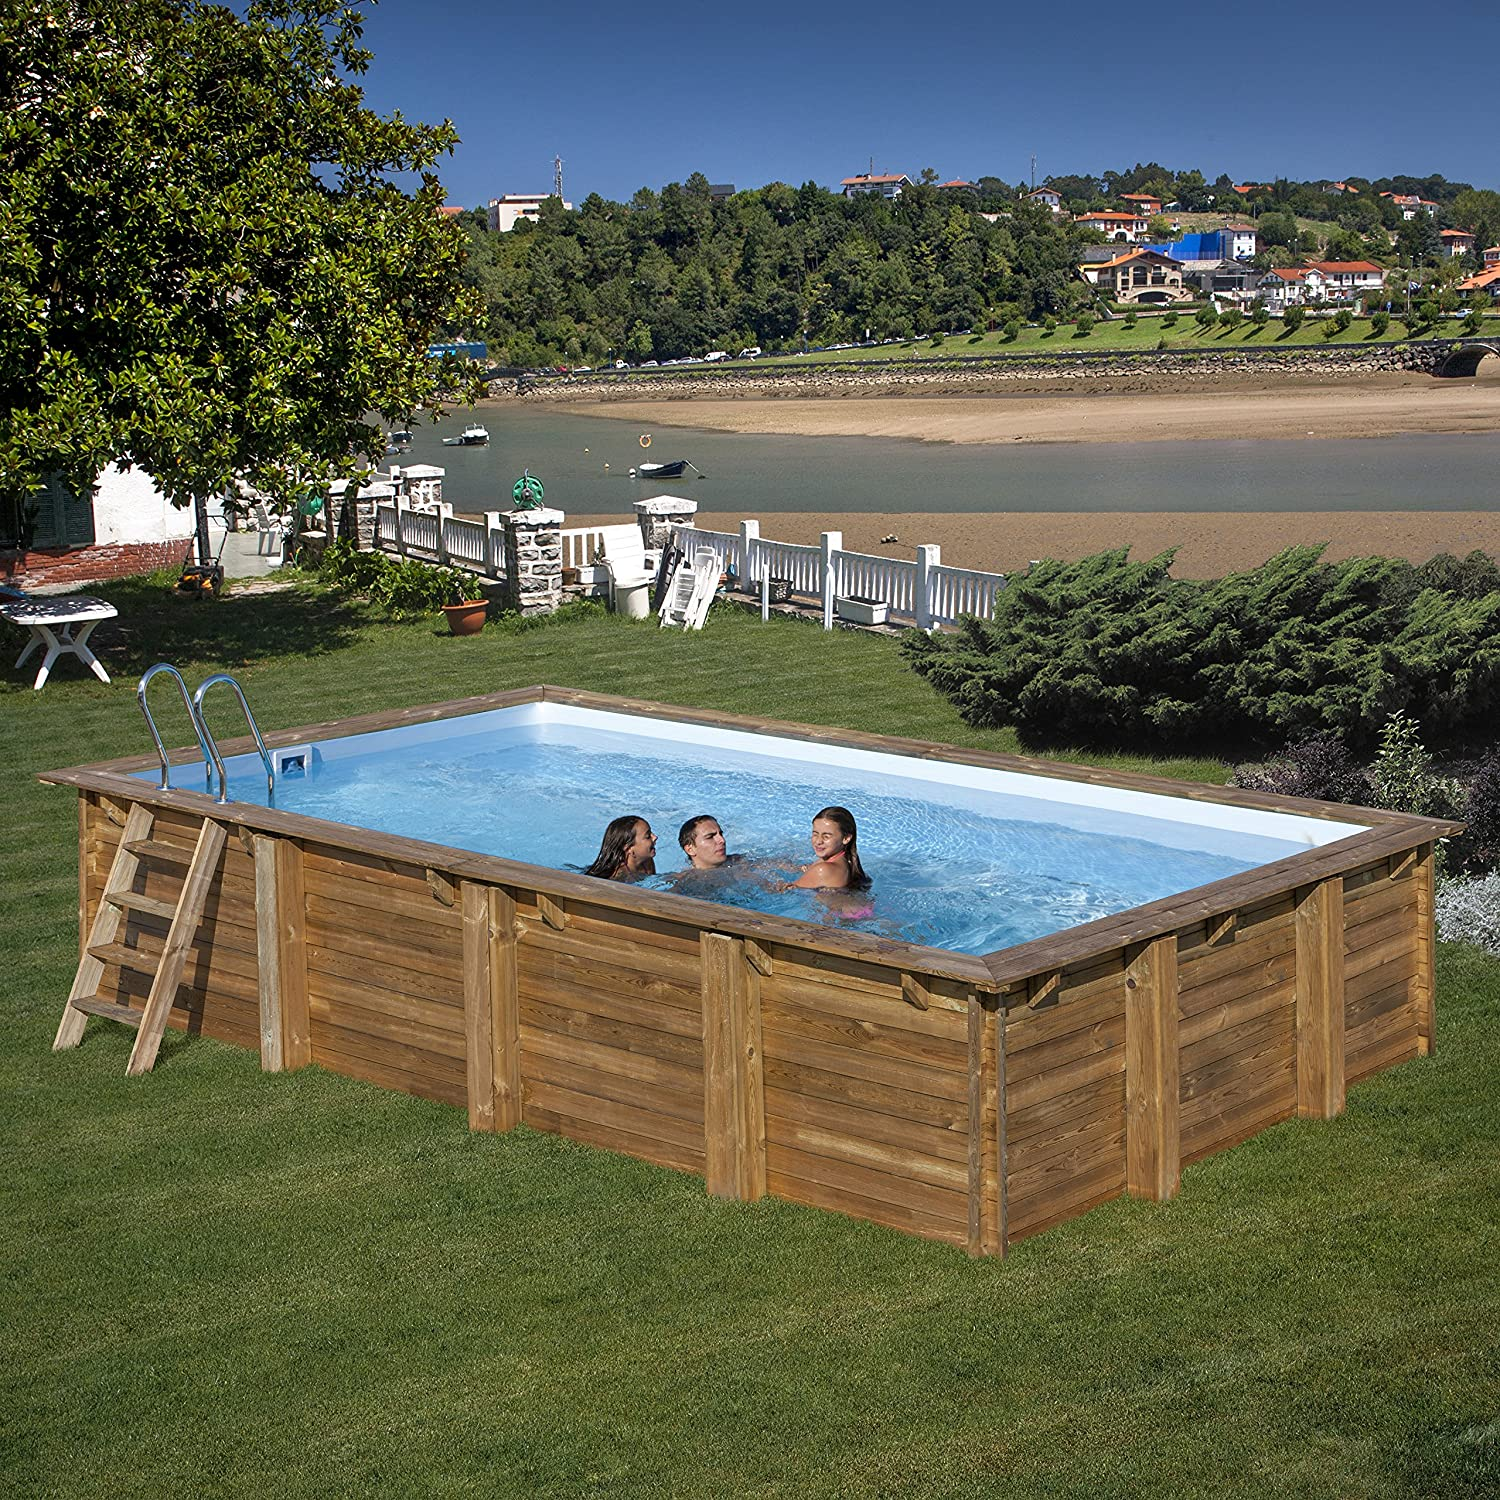 Piscina de madera GRE rectangular Evora Wooden Pool GRE 790094 ...